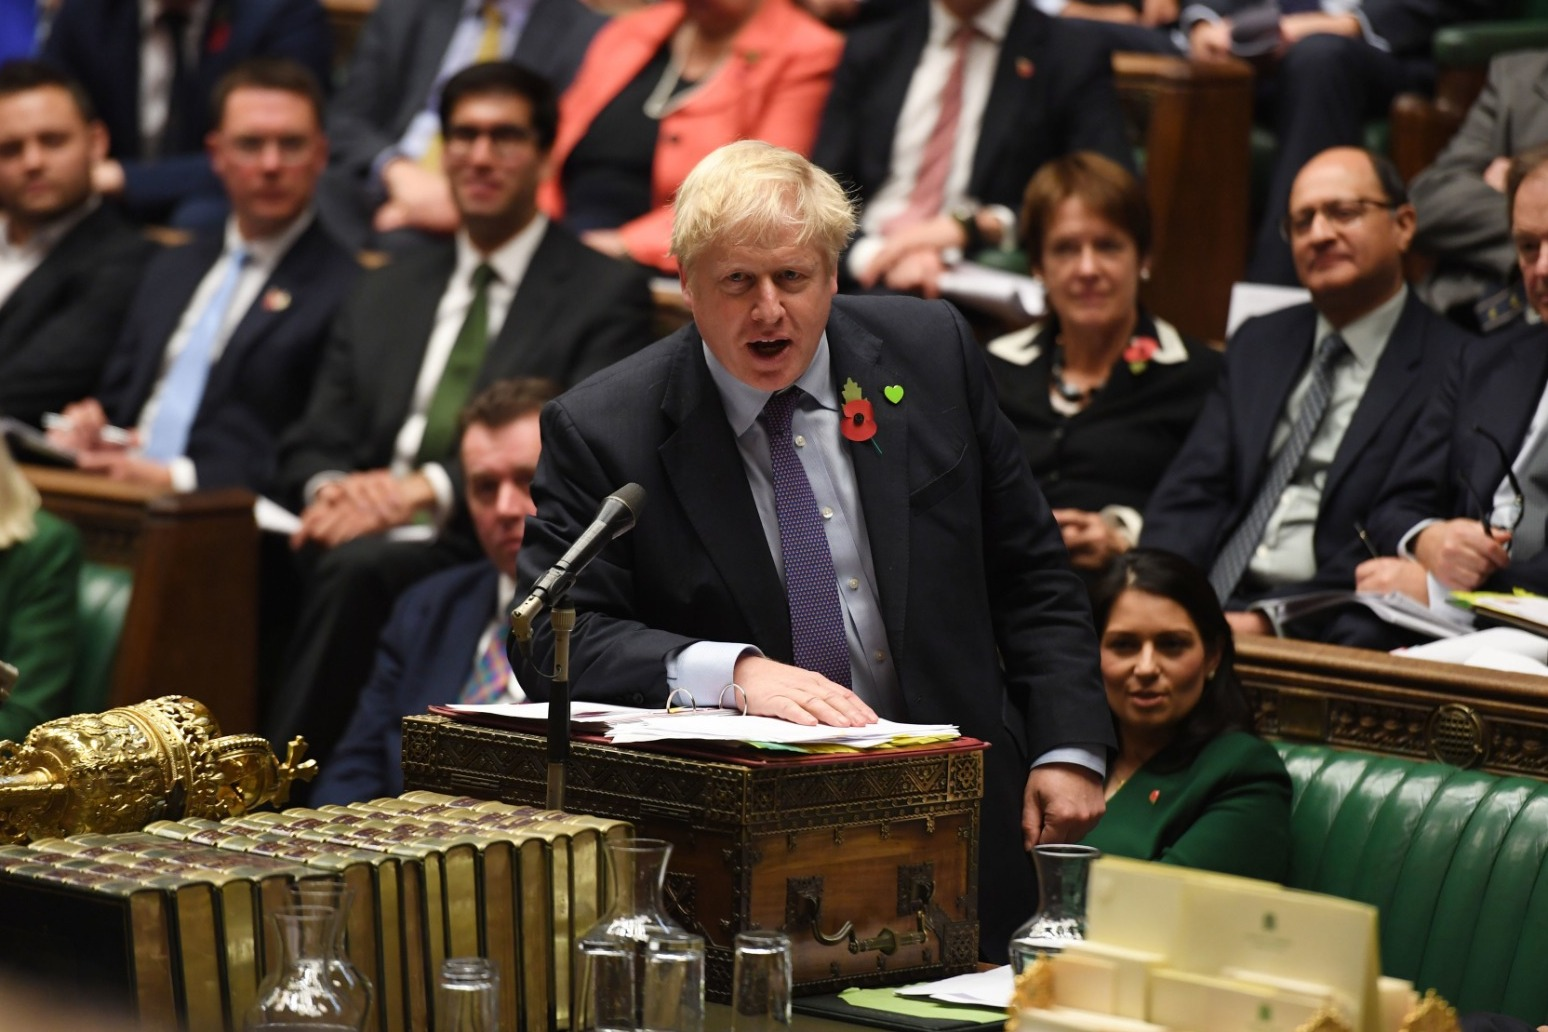 JOHNSON BLAMES CORBYN FOR \'DO OR DIE\' BROKEN BREXIT PLEDGE